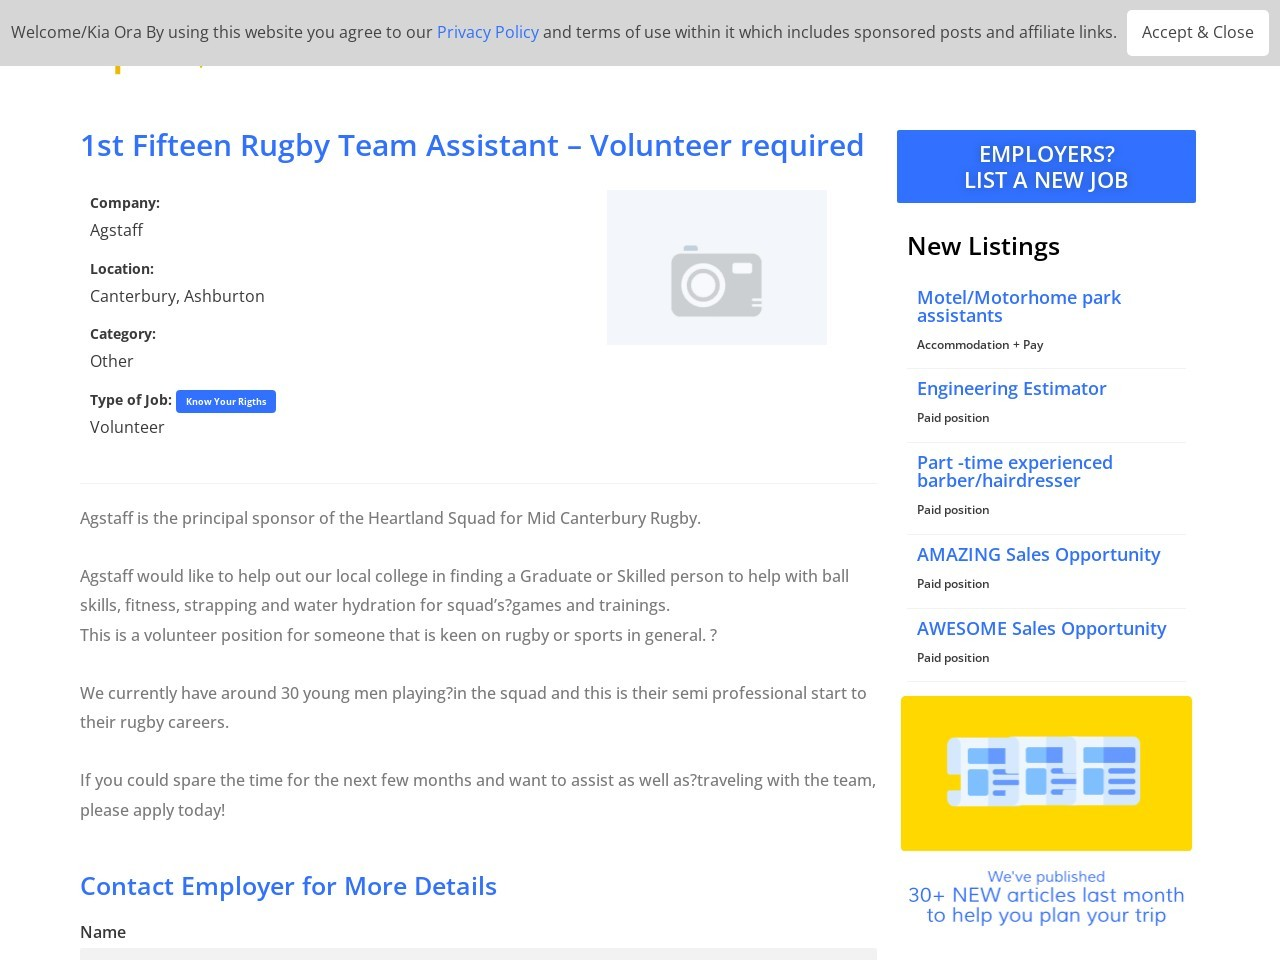 1st Fifteen Rugby Team Assistant | Volunteer required